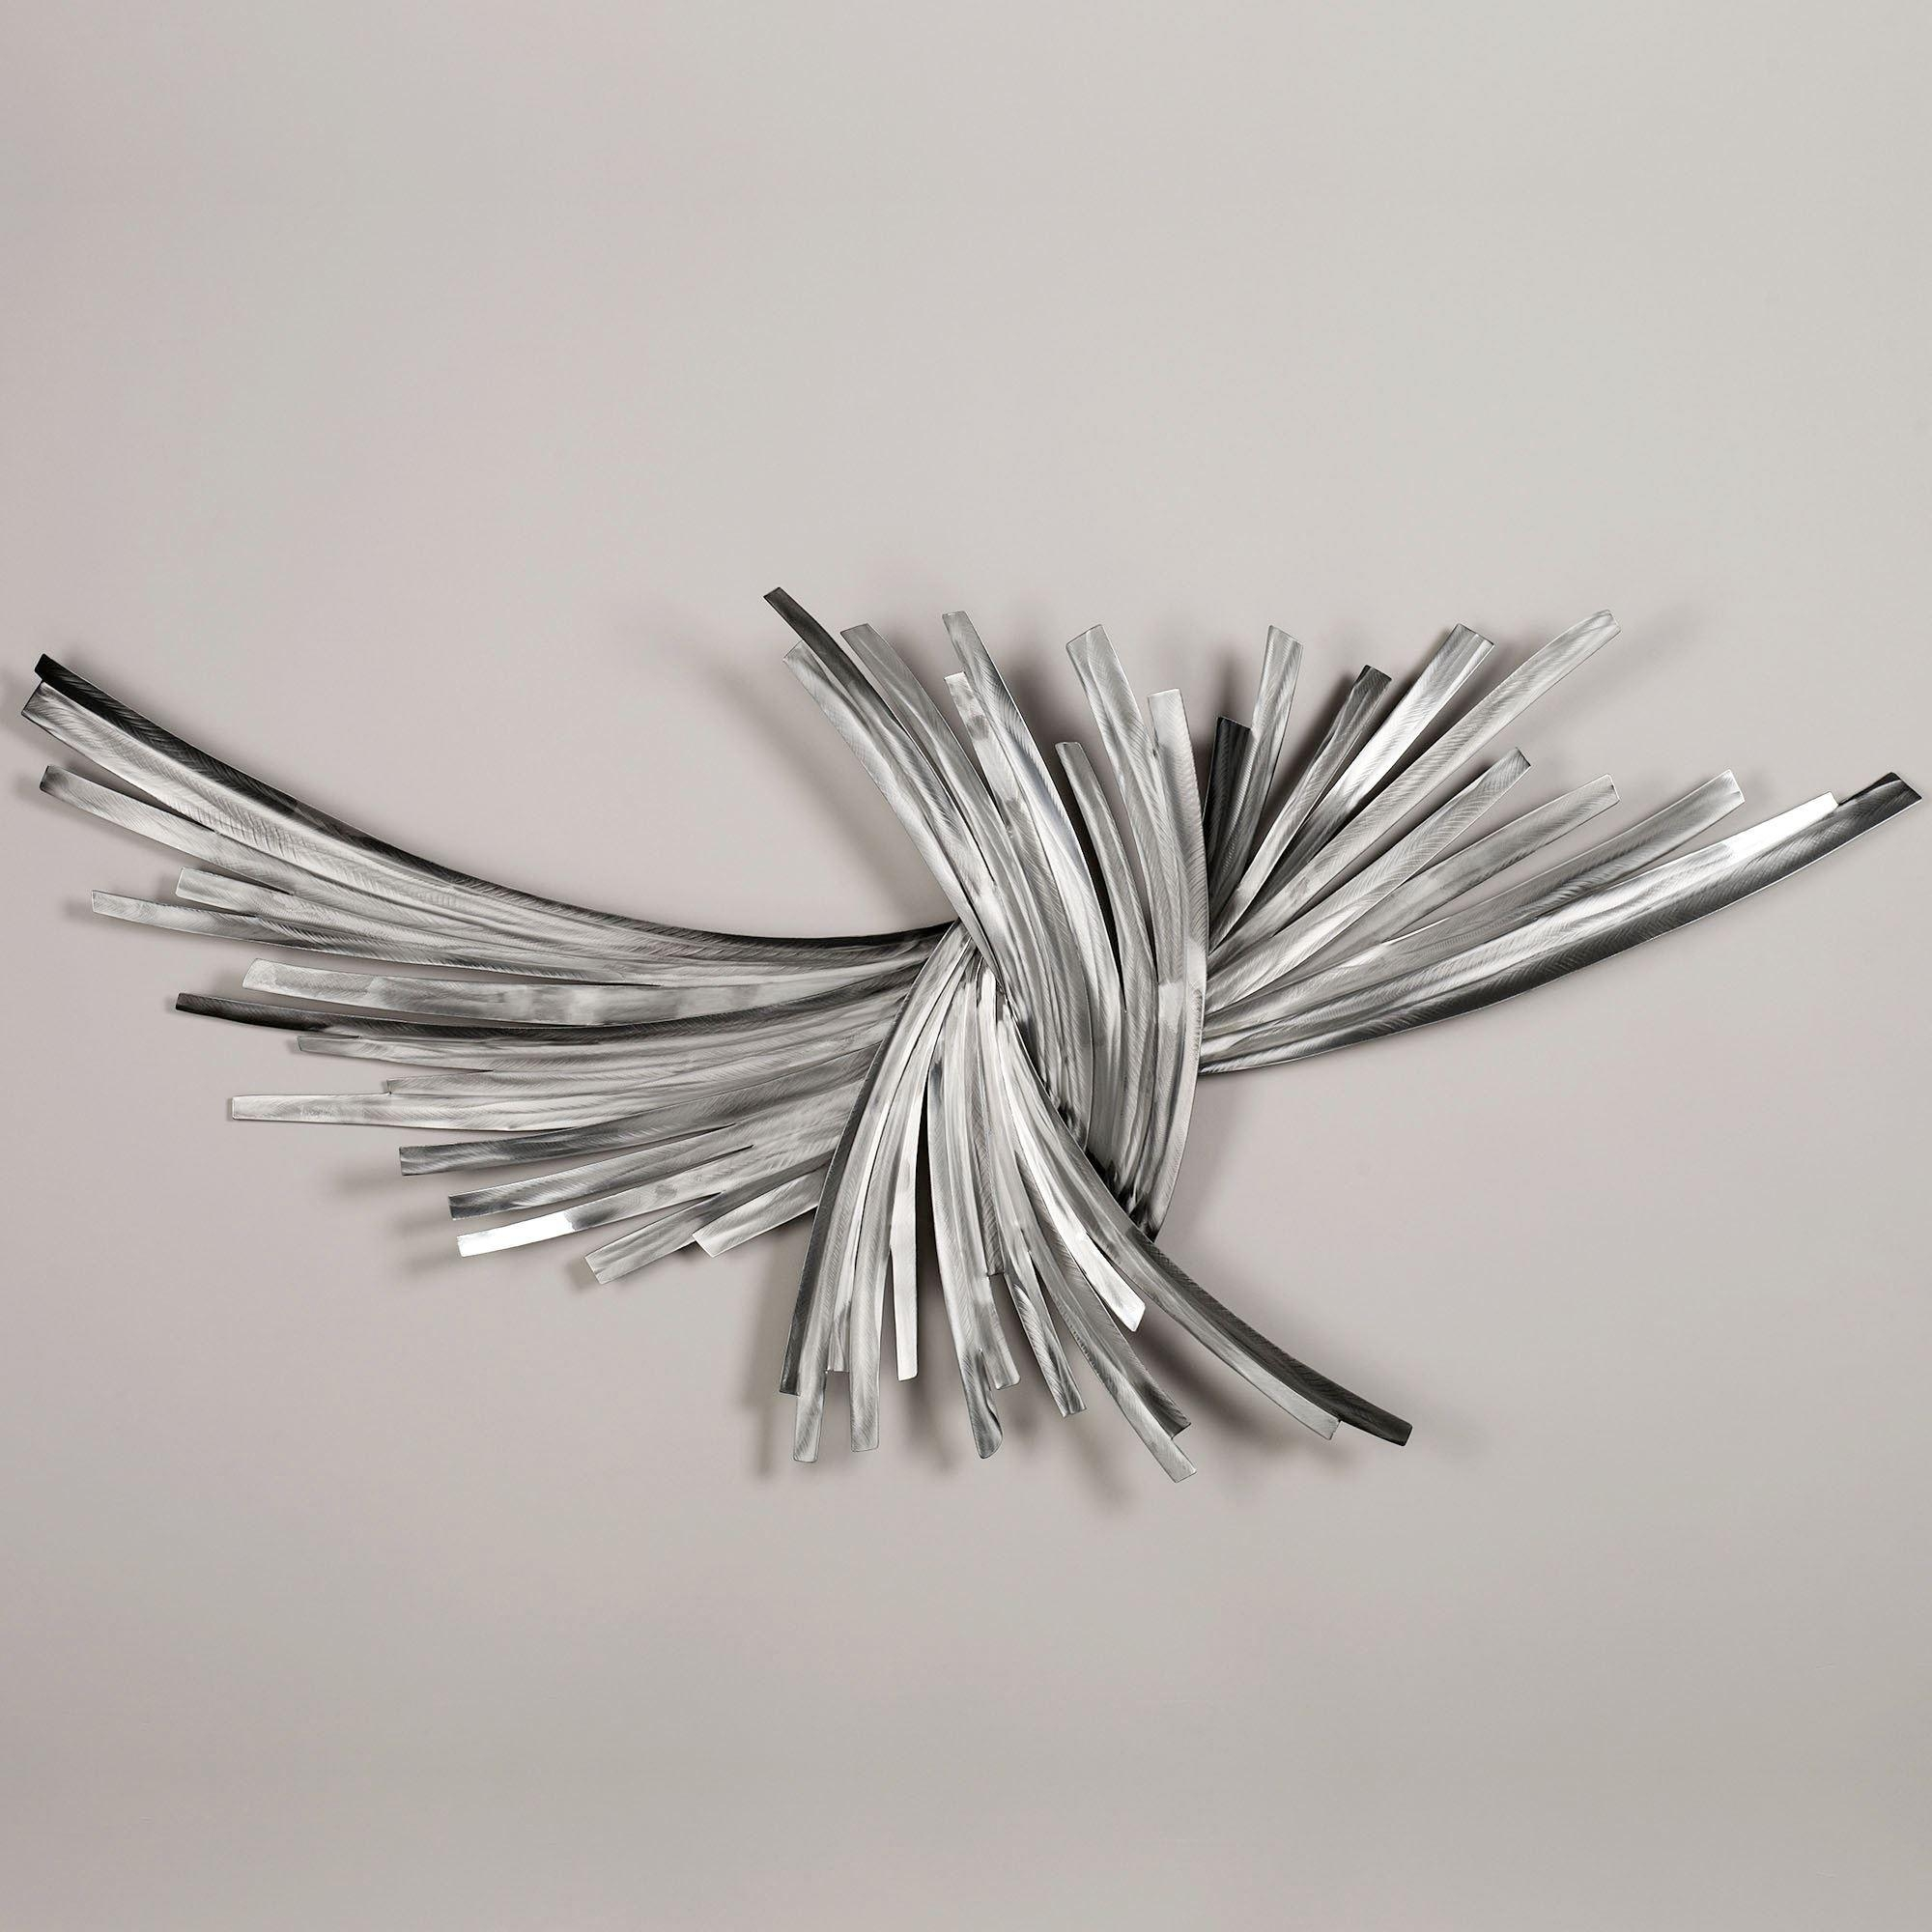 Infinity Silver Metal Wall Sculpture With Contemporary Metal Wall Art Sculpture (View 3 of 20)